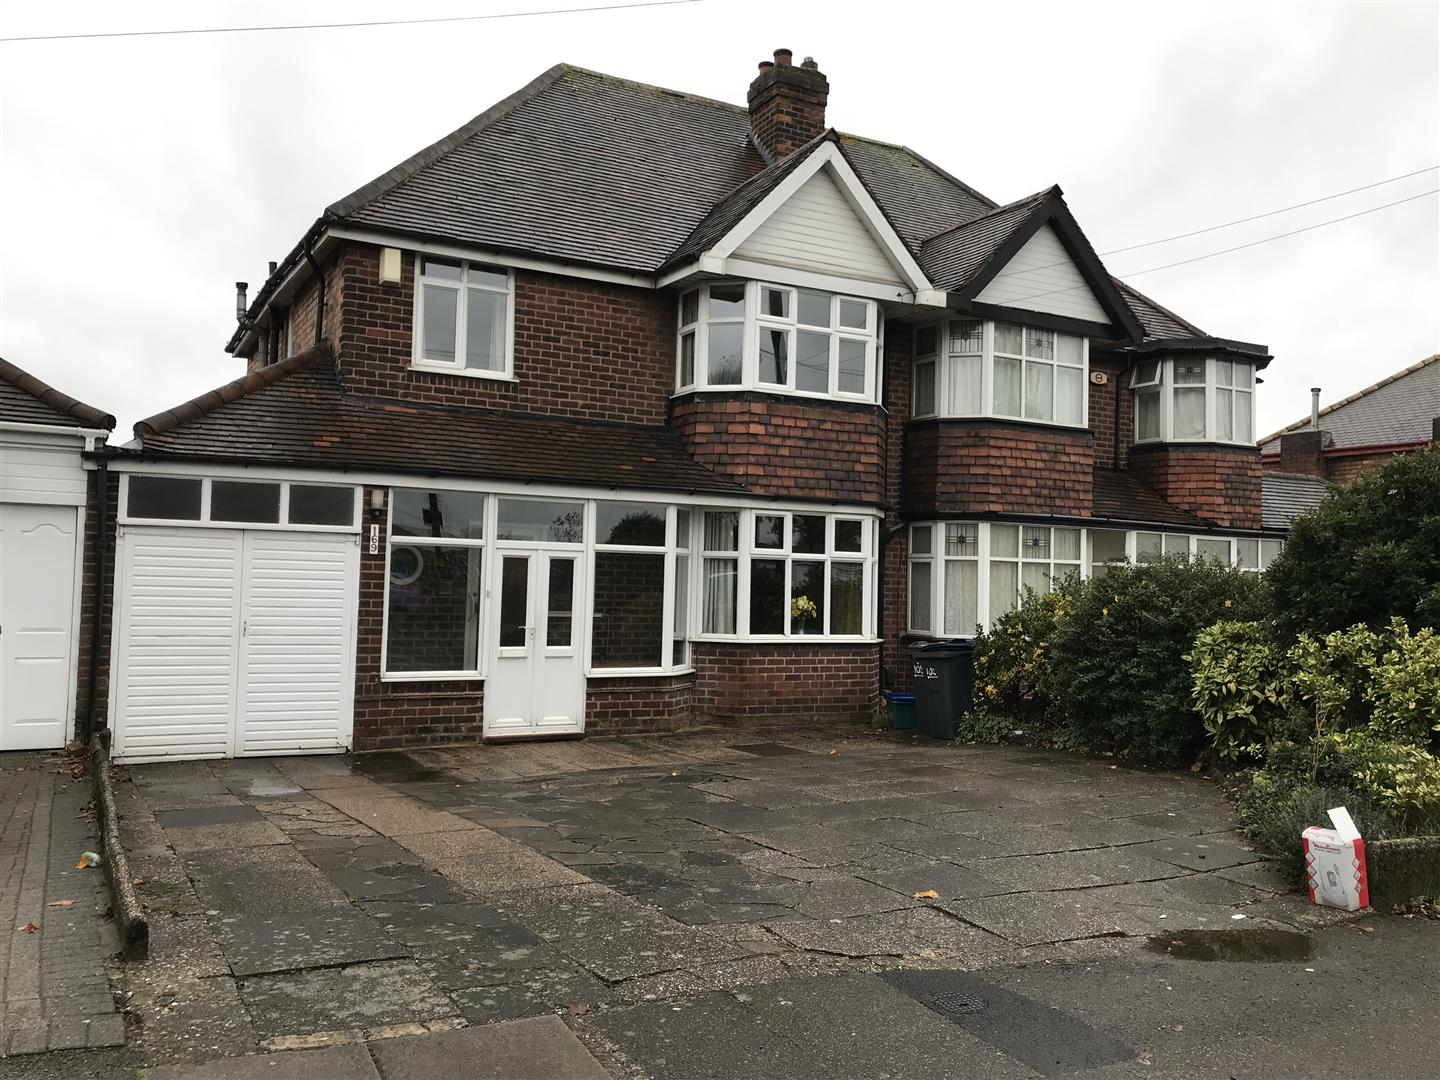 3 bed house for sale in Bromford Road, Hodge Hill, Birmingham 1